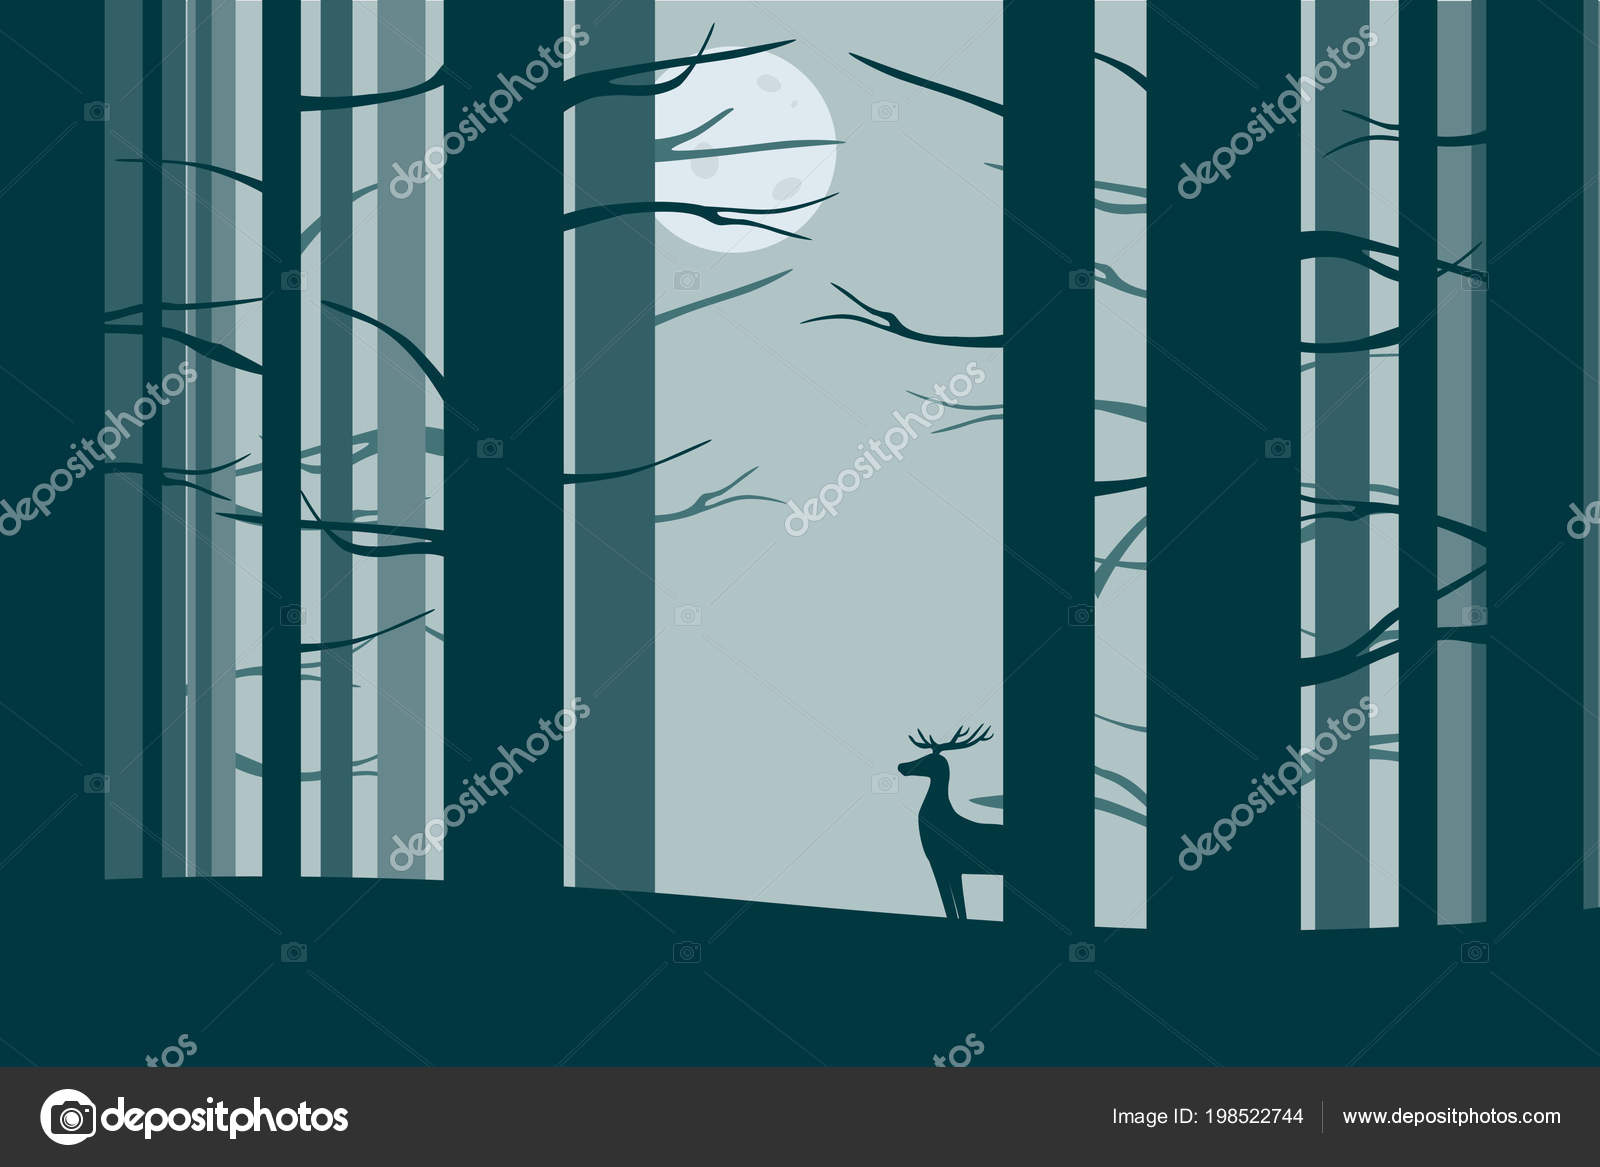 deer night forest stock vector st birdy 198522744